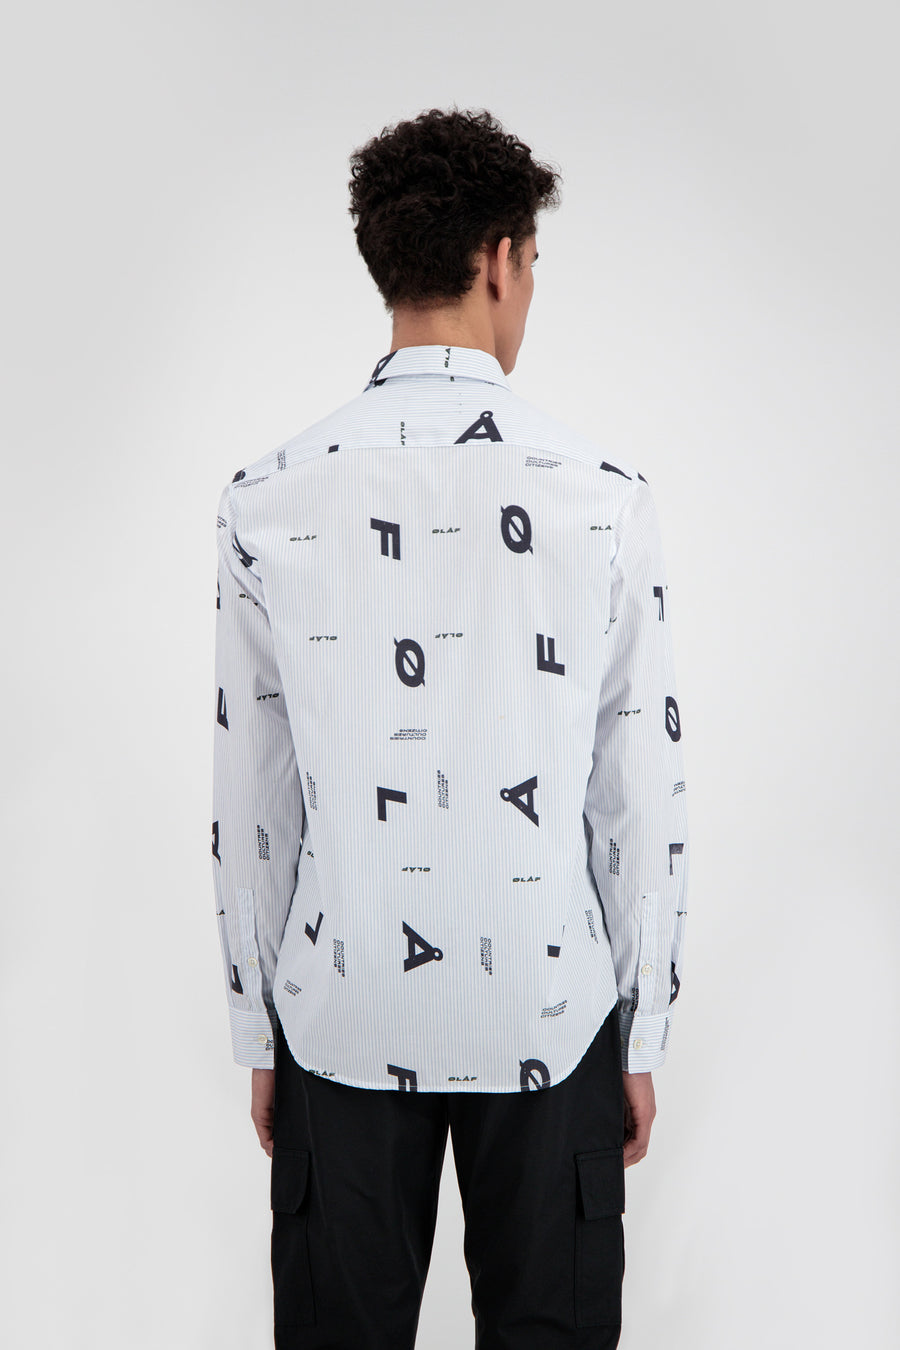 ØLÅF All Over Print Classic Shirt